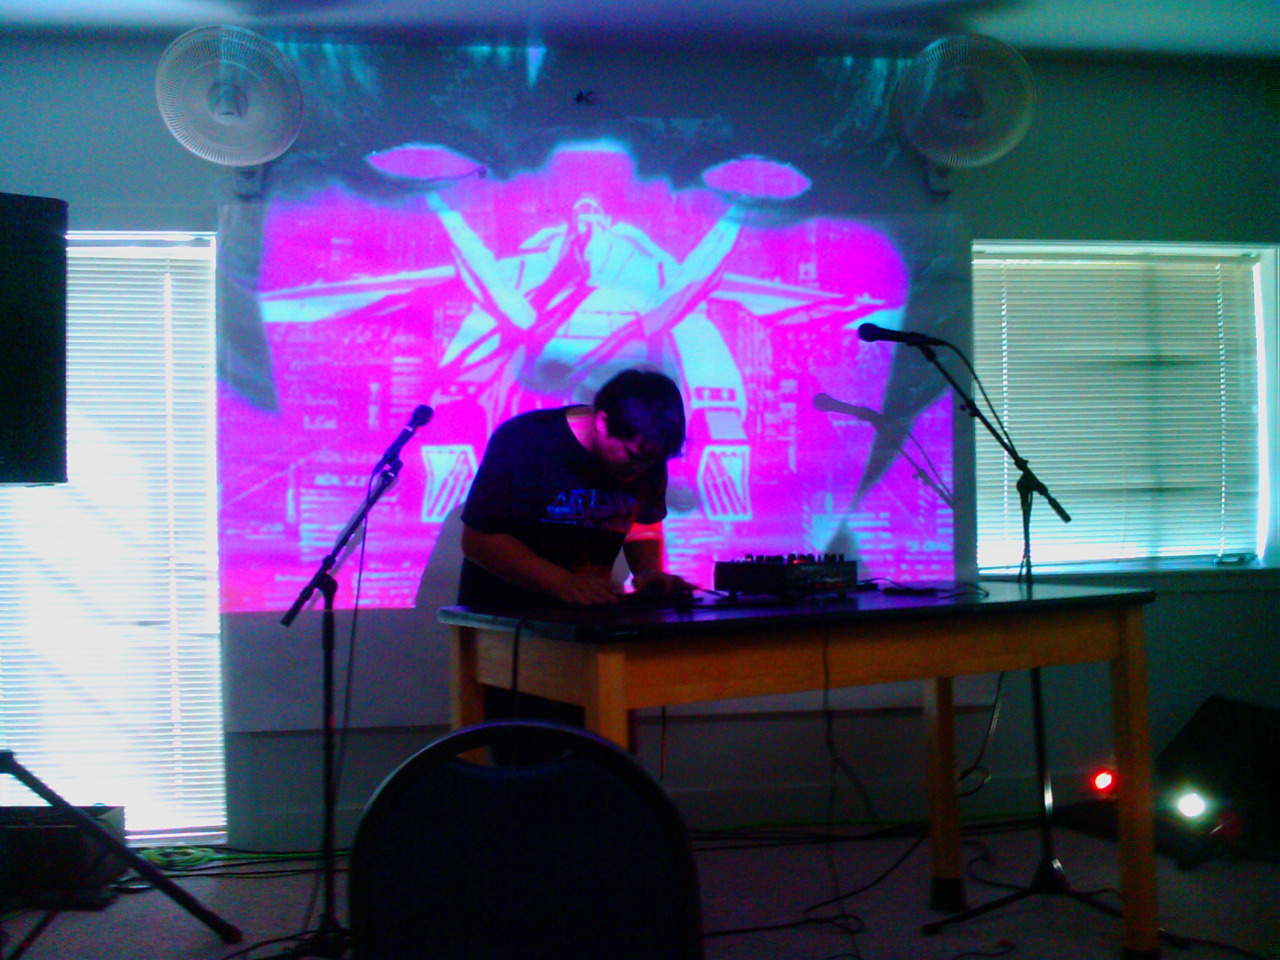 E.N.Cowell performing with Starpause on visuals